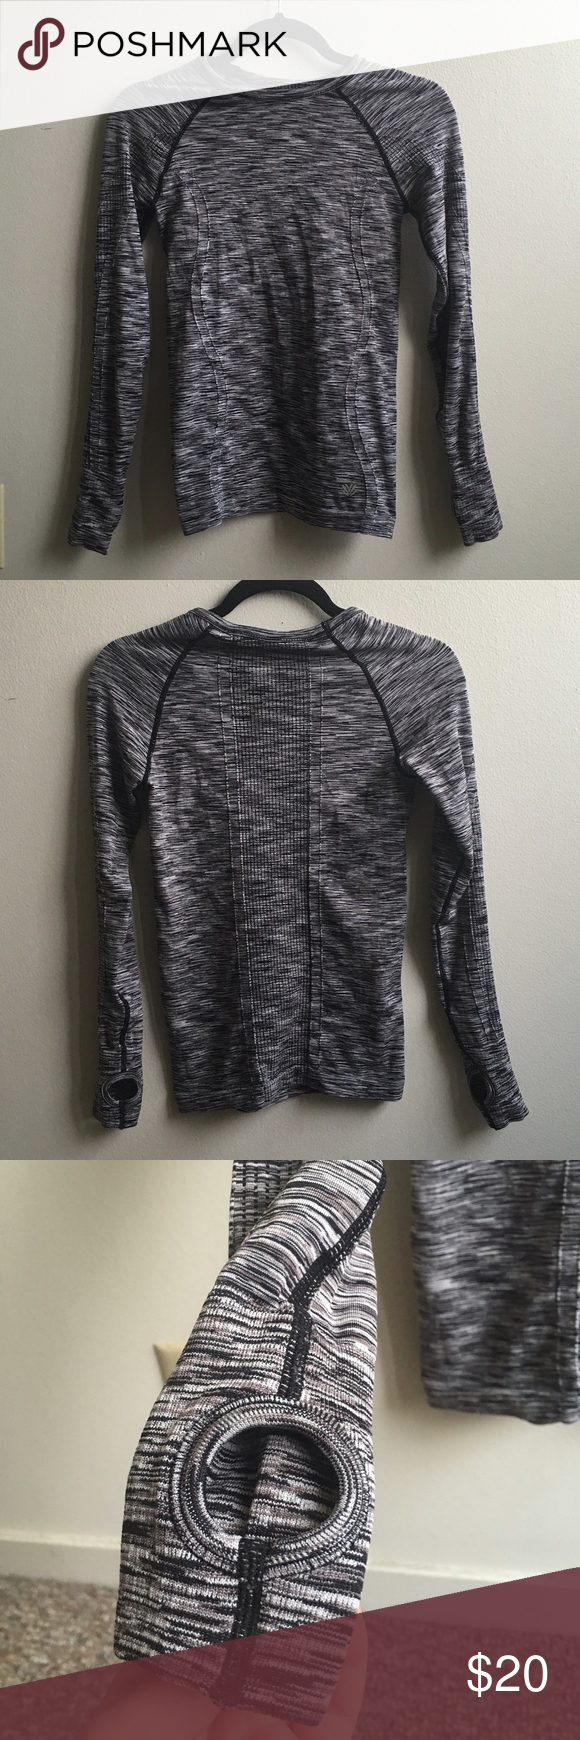 ‼️LAST CHANCE‼️NWOT Activewear shirt Brand new without tag long sleeve activewear shirt from Forever 21. Super warm and comfortable. Stretchy material and form fitting. Forever 21 Tops